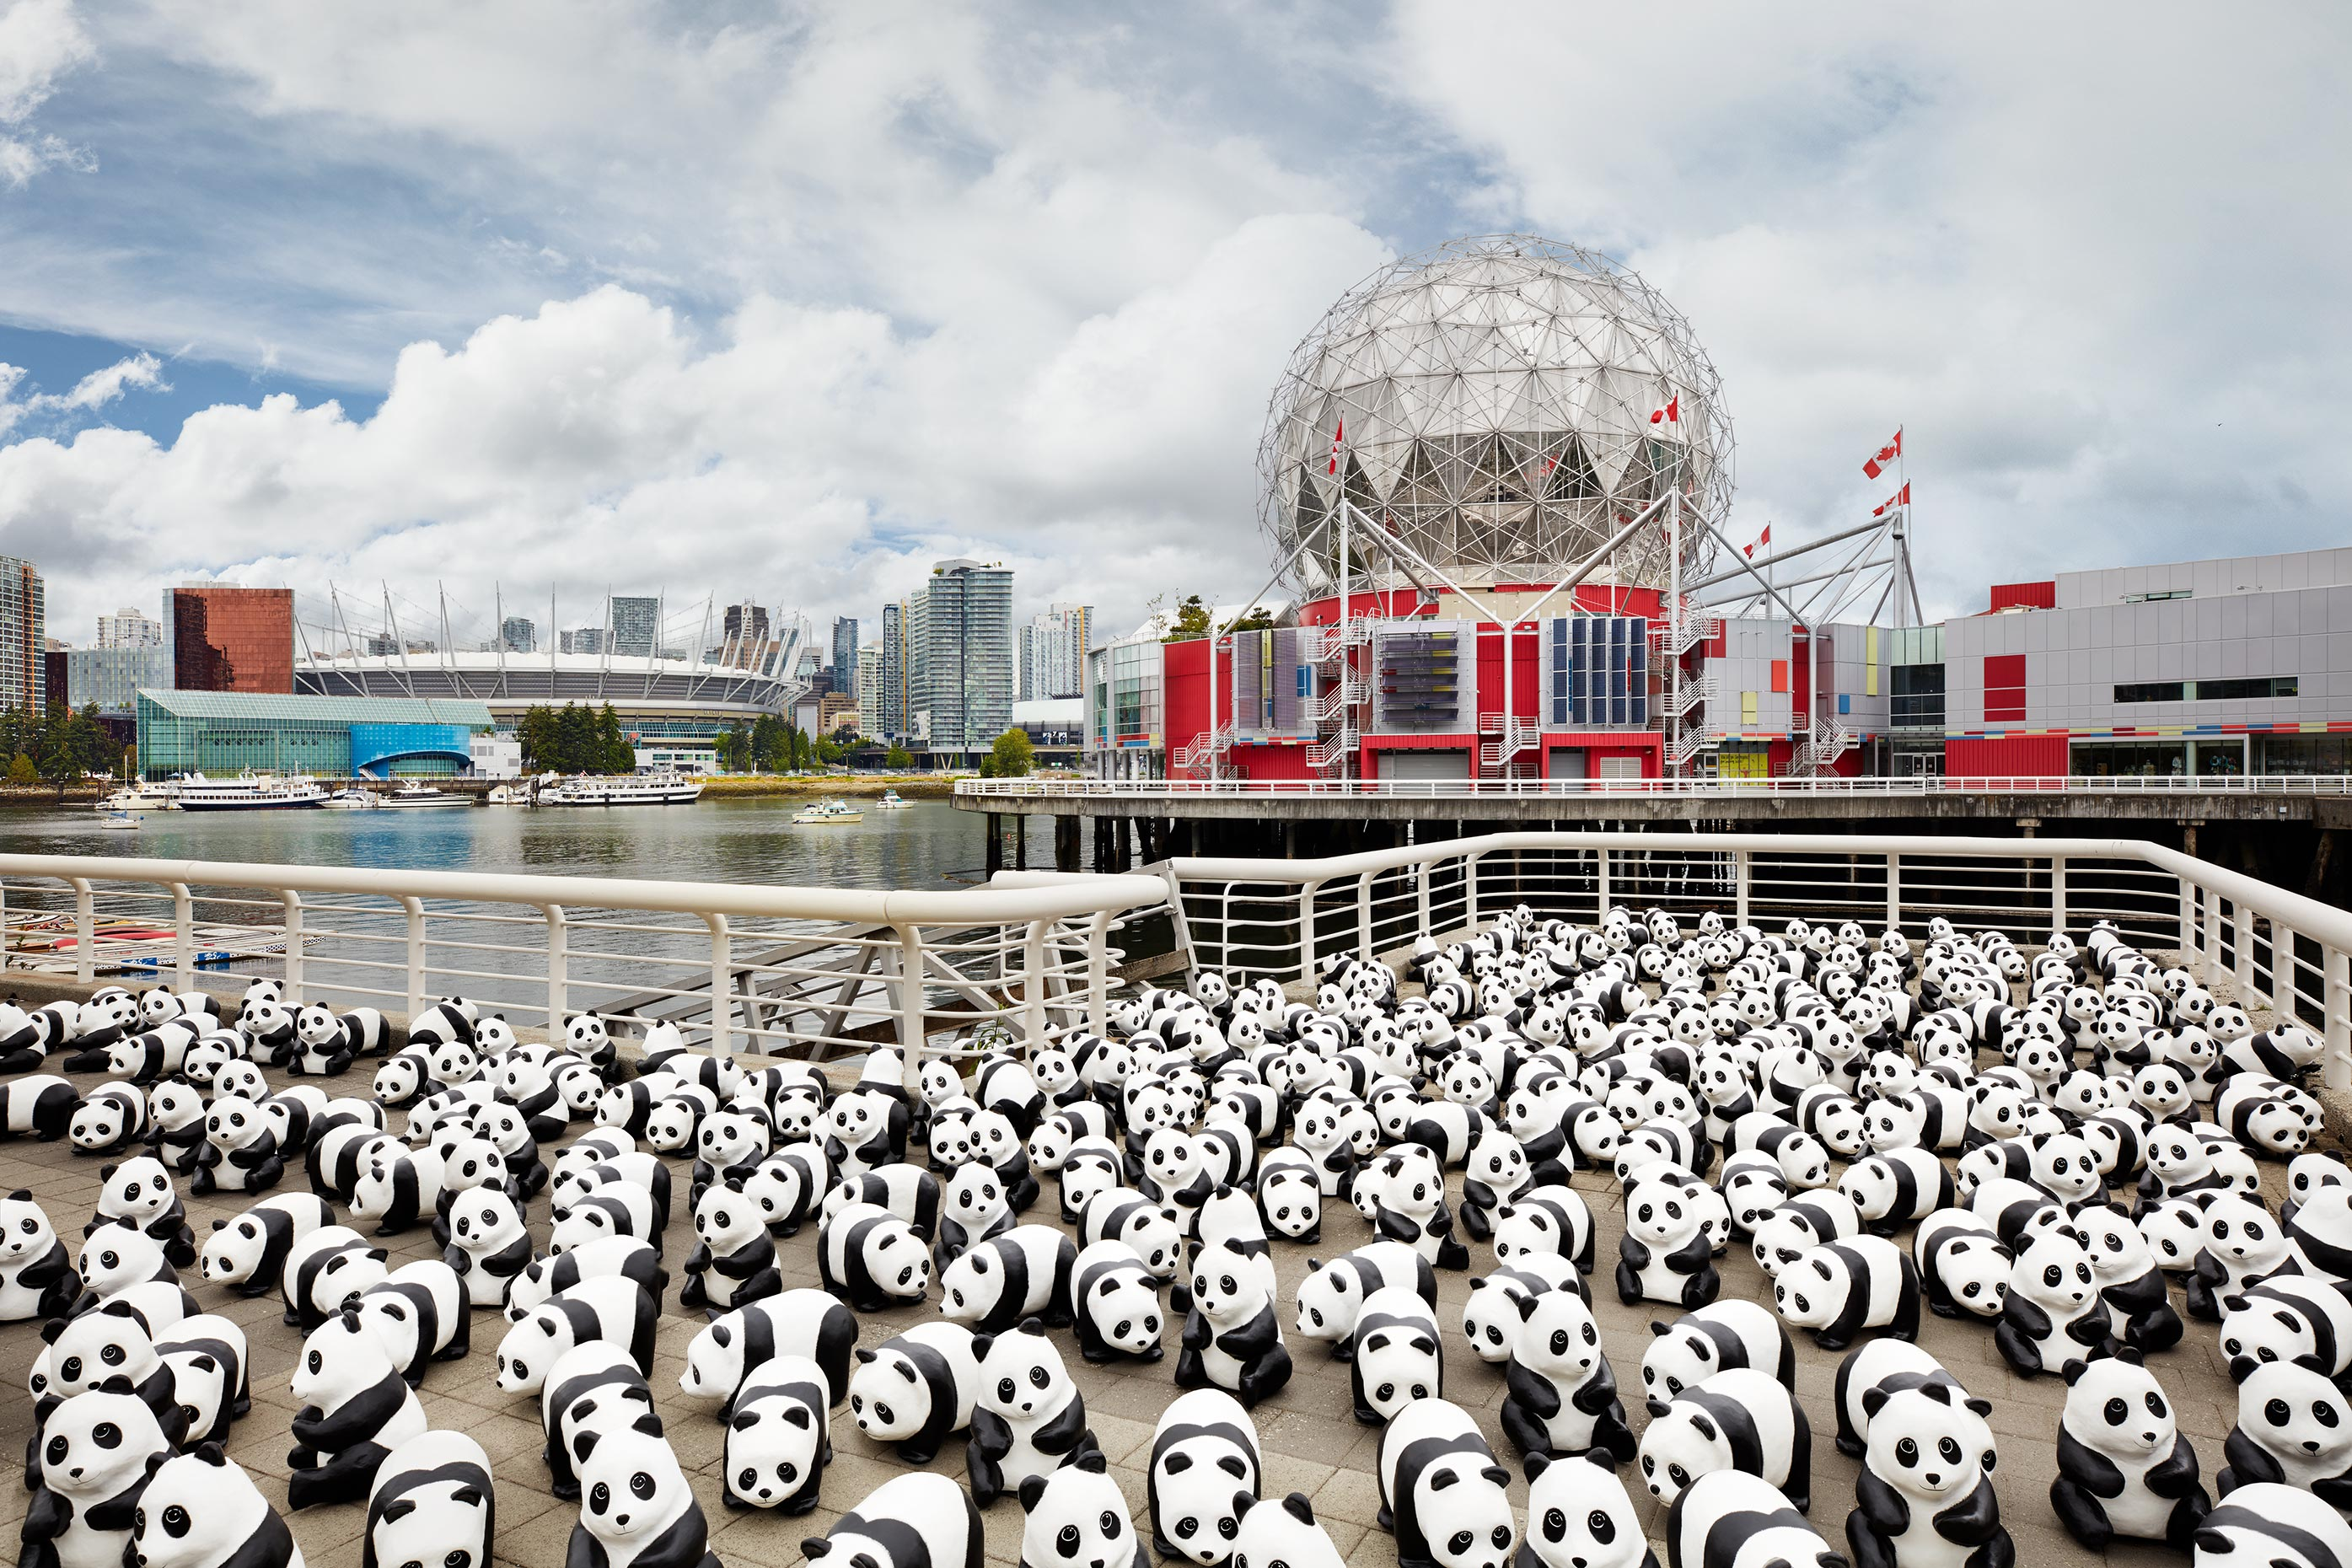 1600+ Pandas - Science World